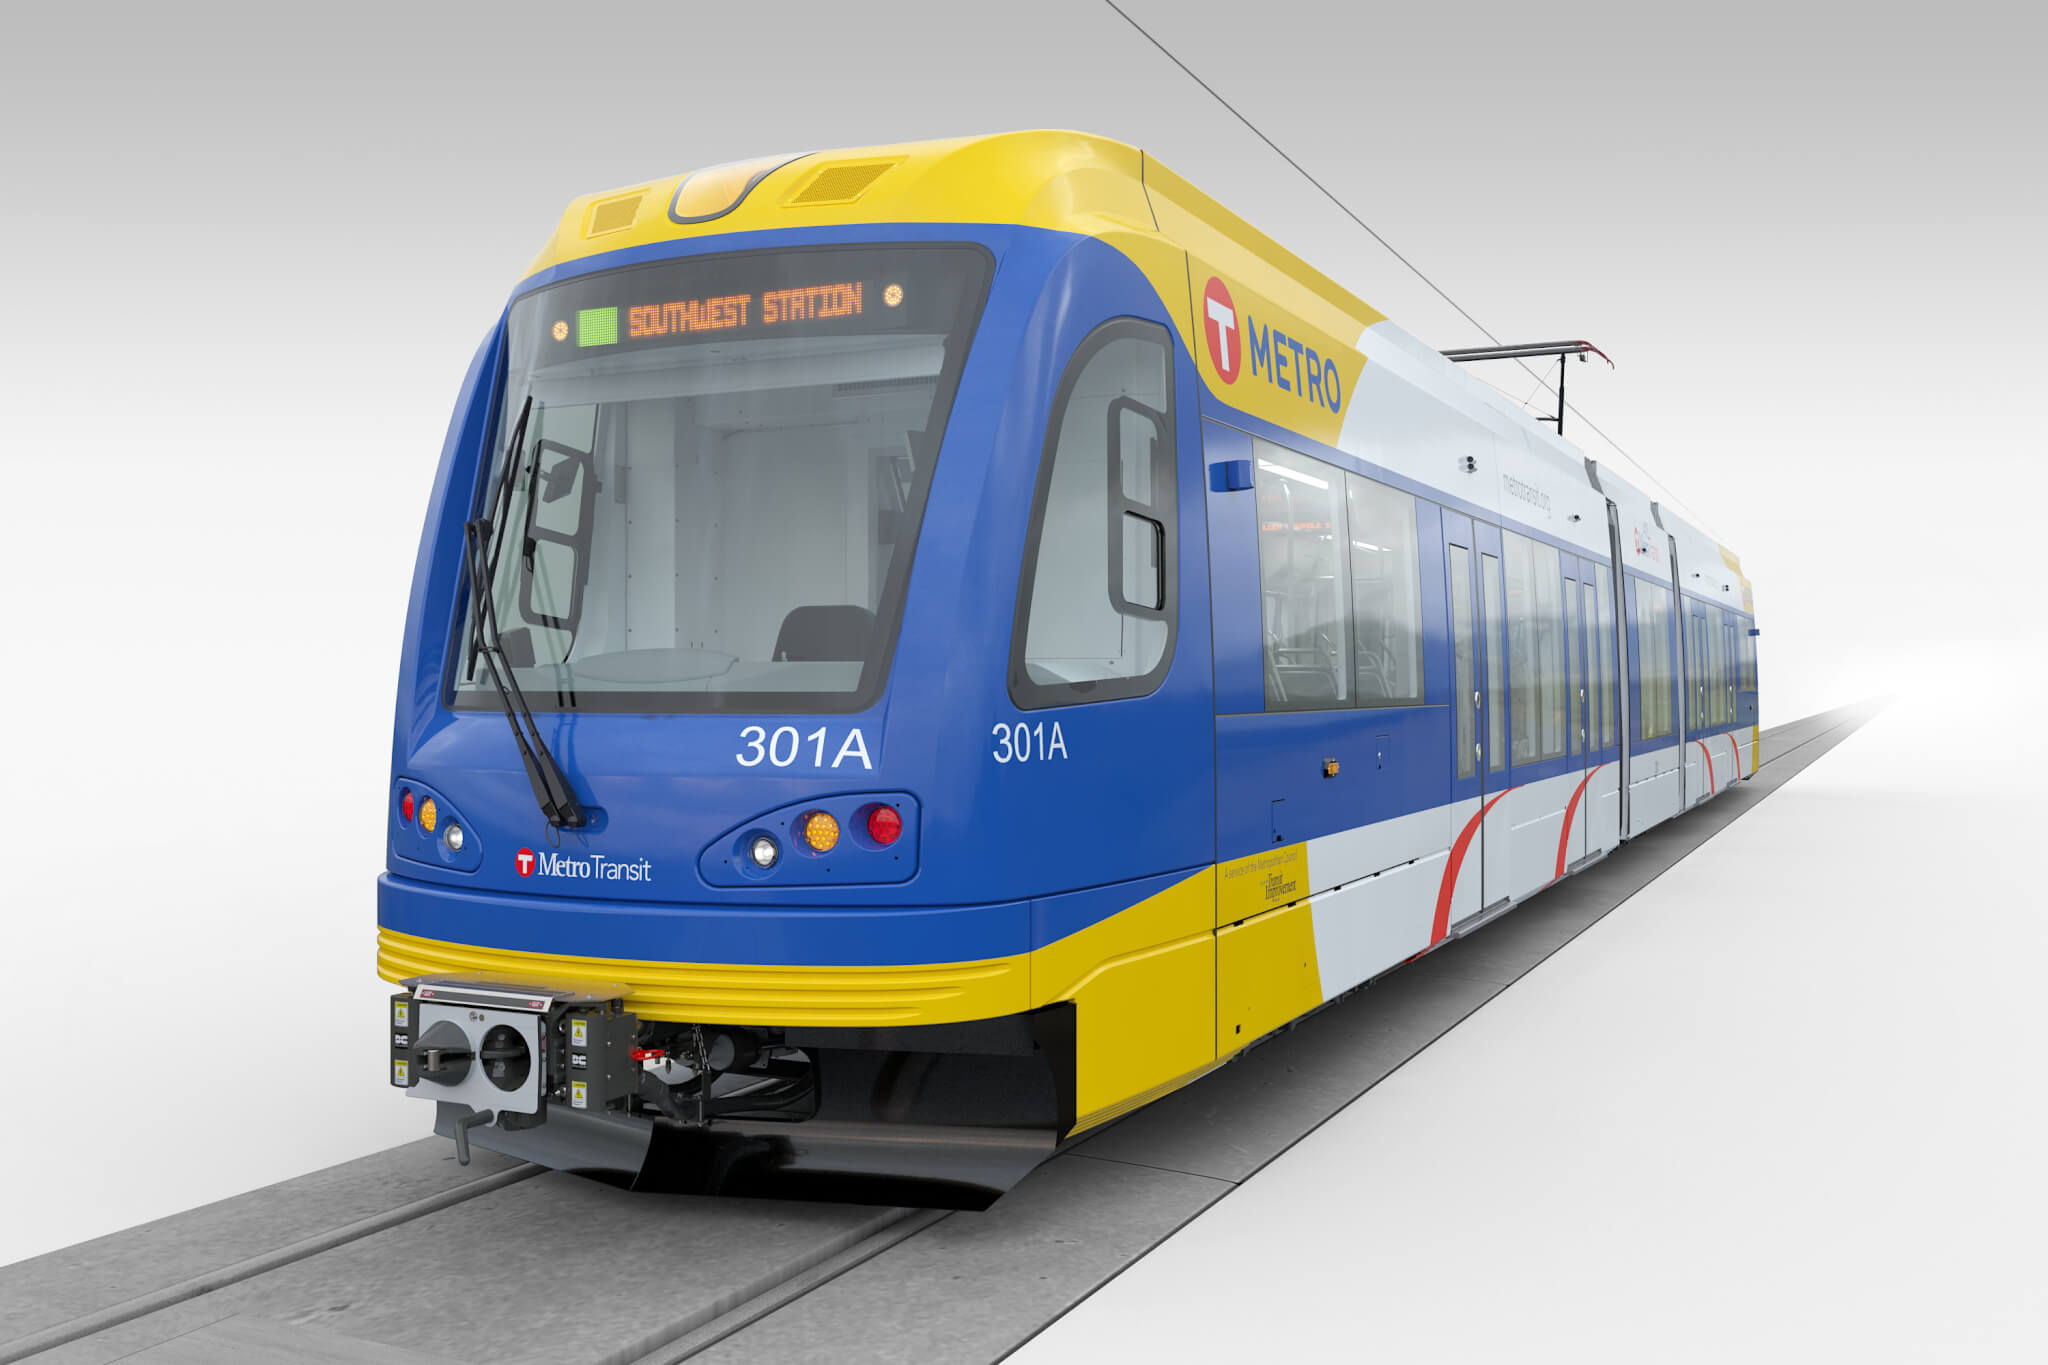 houston metro rail expansion with Usa Siemens S70 Light Rail Vehicles Selected Southwest Lrt on Train Simulator Route Proposal Rtd likewise San Diego Plans Extension To Its Trolley  work Mostly Skipping Over Inner City further Paris also L1 p5 moreover Cincinnati Light Rail.